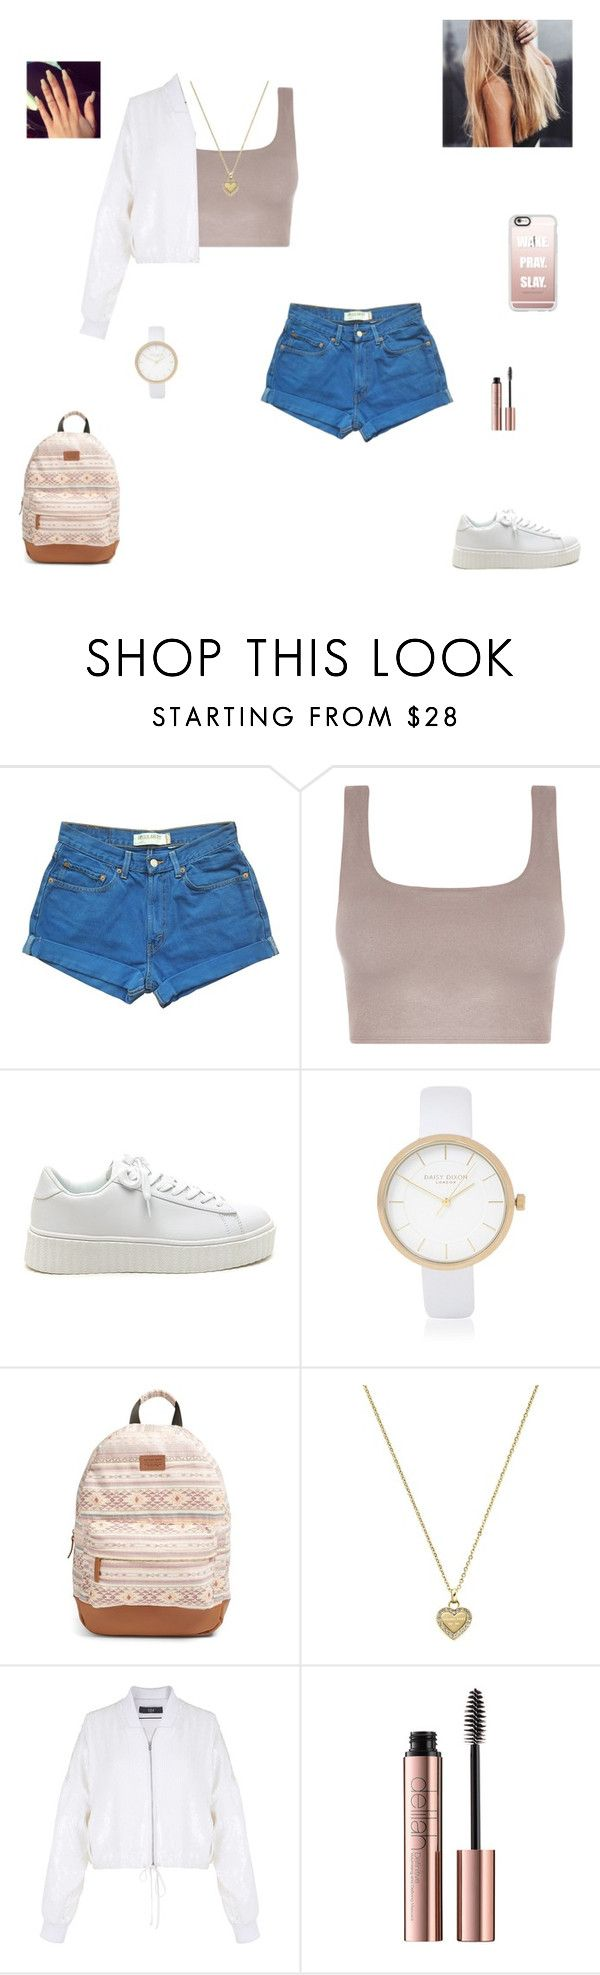 """wake pray slay"" by synclairel ❤ liked on Polyvore featuring Levi's, River Island, Rip Curl, Michael Kors, TIBI, Casetify, Fall, cute, casual and ootd"